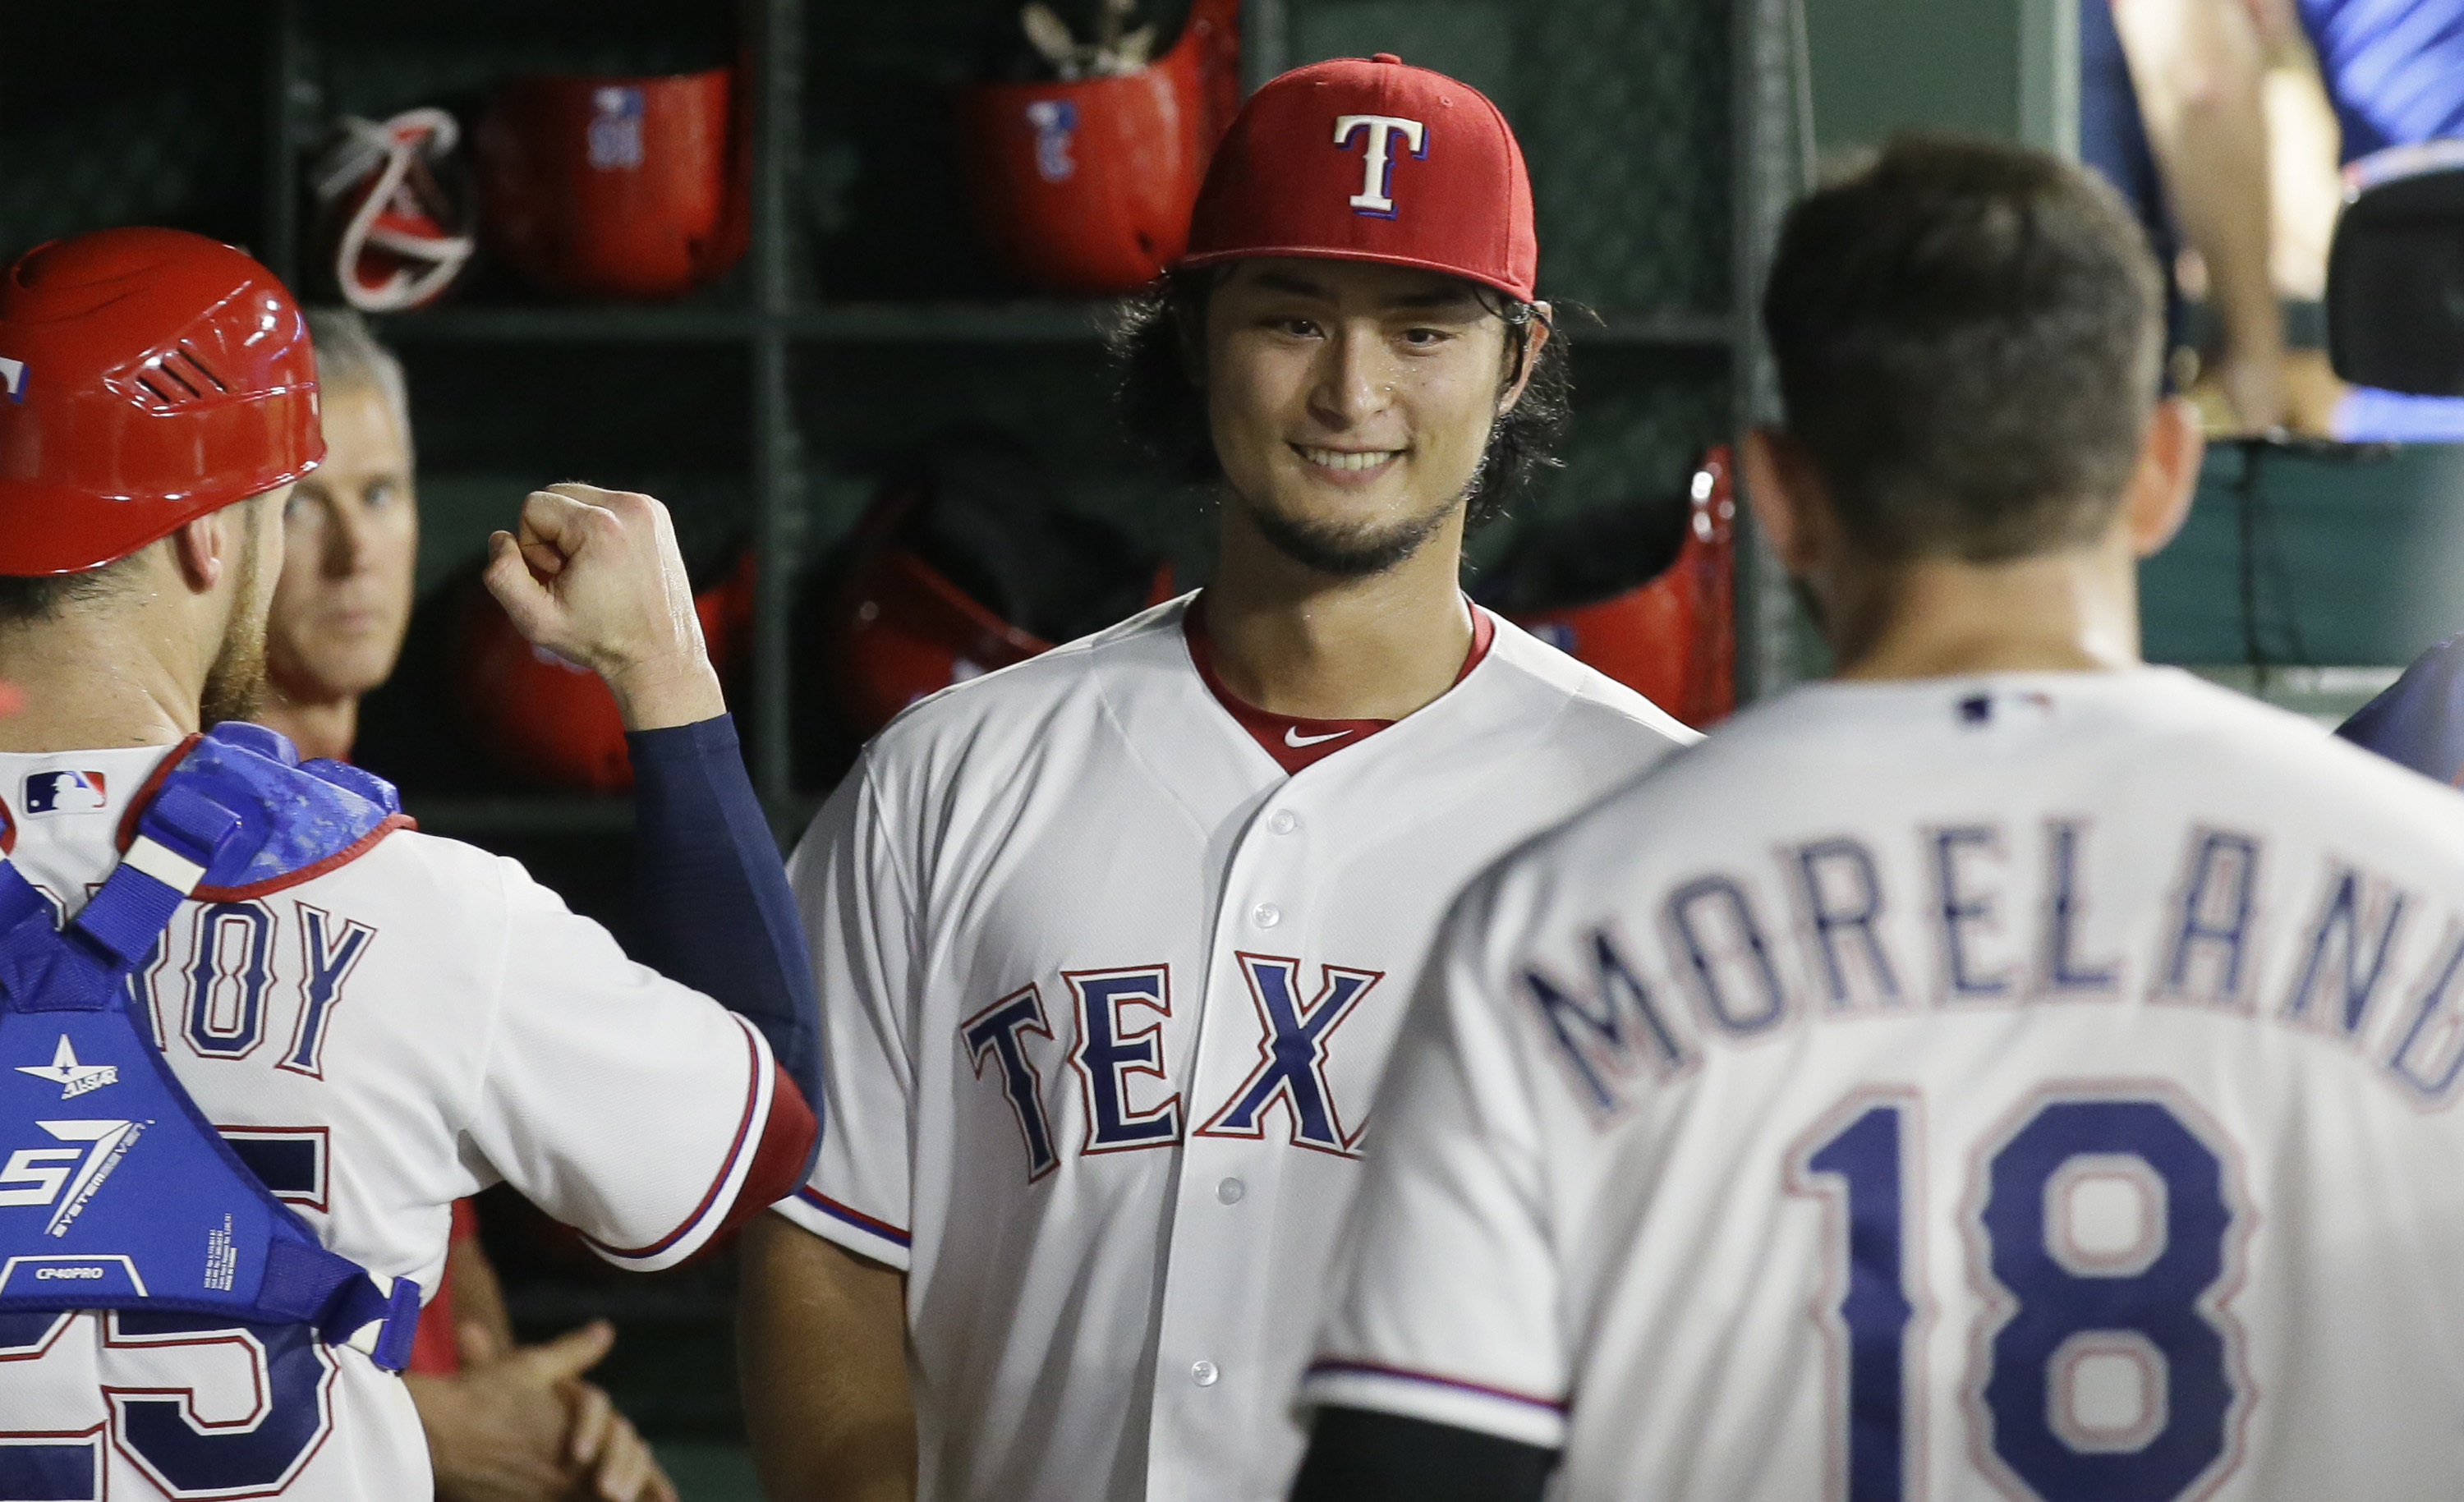 Texas Rangers starting pitcher Yu Darvish of Japan, center, is congratulated by teammates Jonathan Lucroy (25) and Mitch Moreland (18) in the dugout after the sixth inning of a baseball game against the Seattle Mariners in Arlington, Texas, Monday, Aug. 2